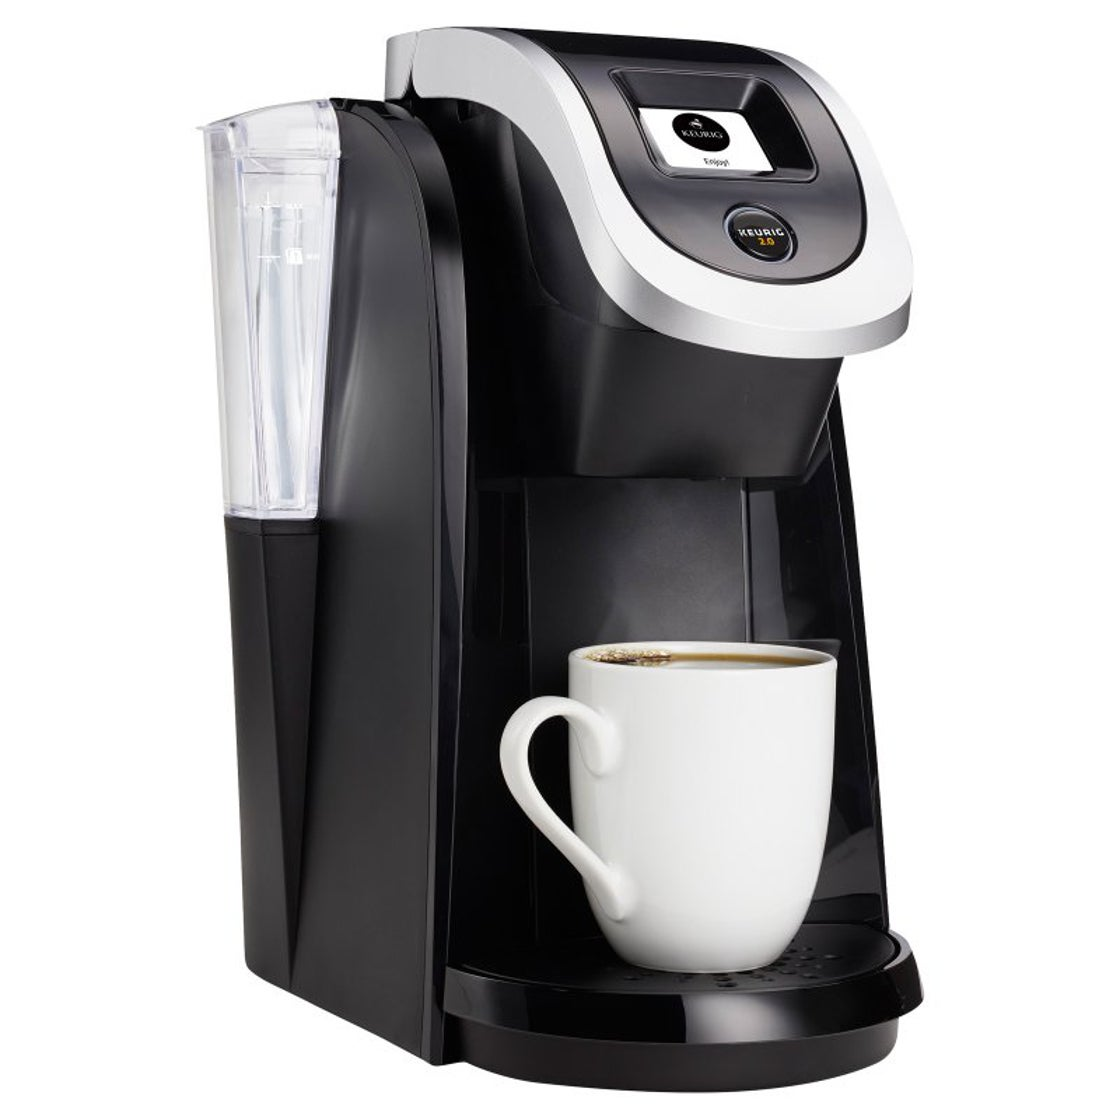 Shop Keurig 2.0 Black K250 Coffee Brewer - Free Shipping Today ... on